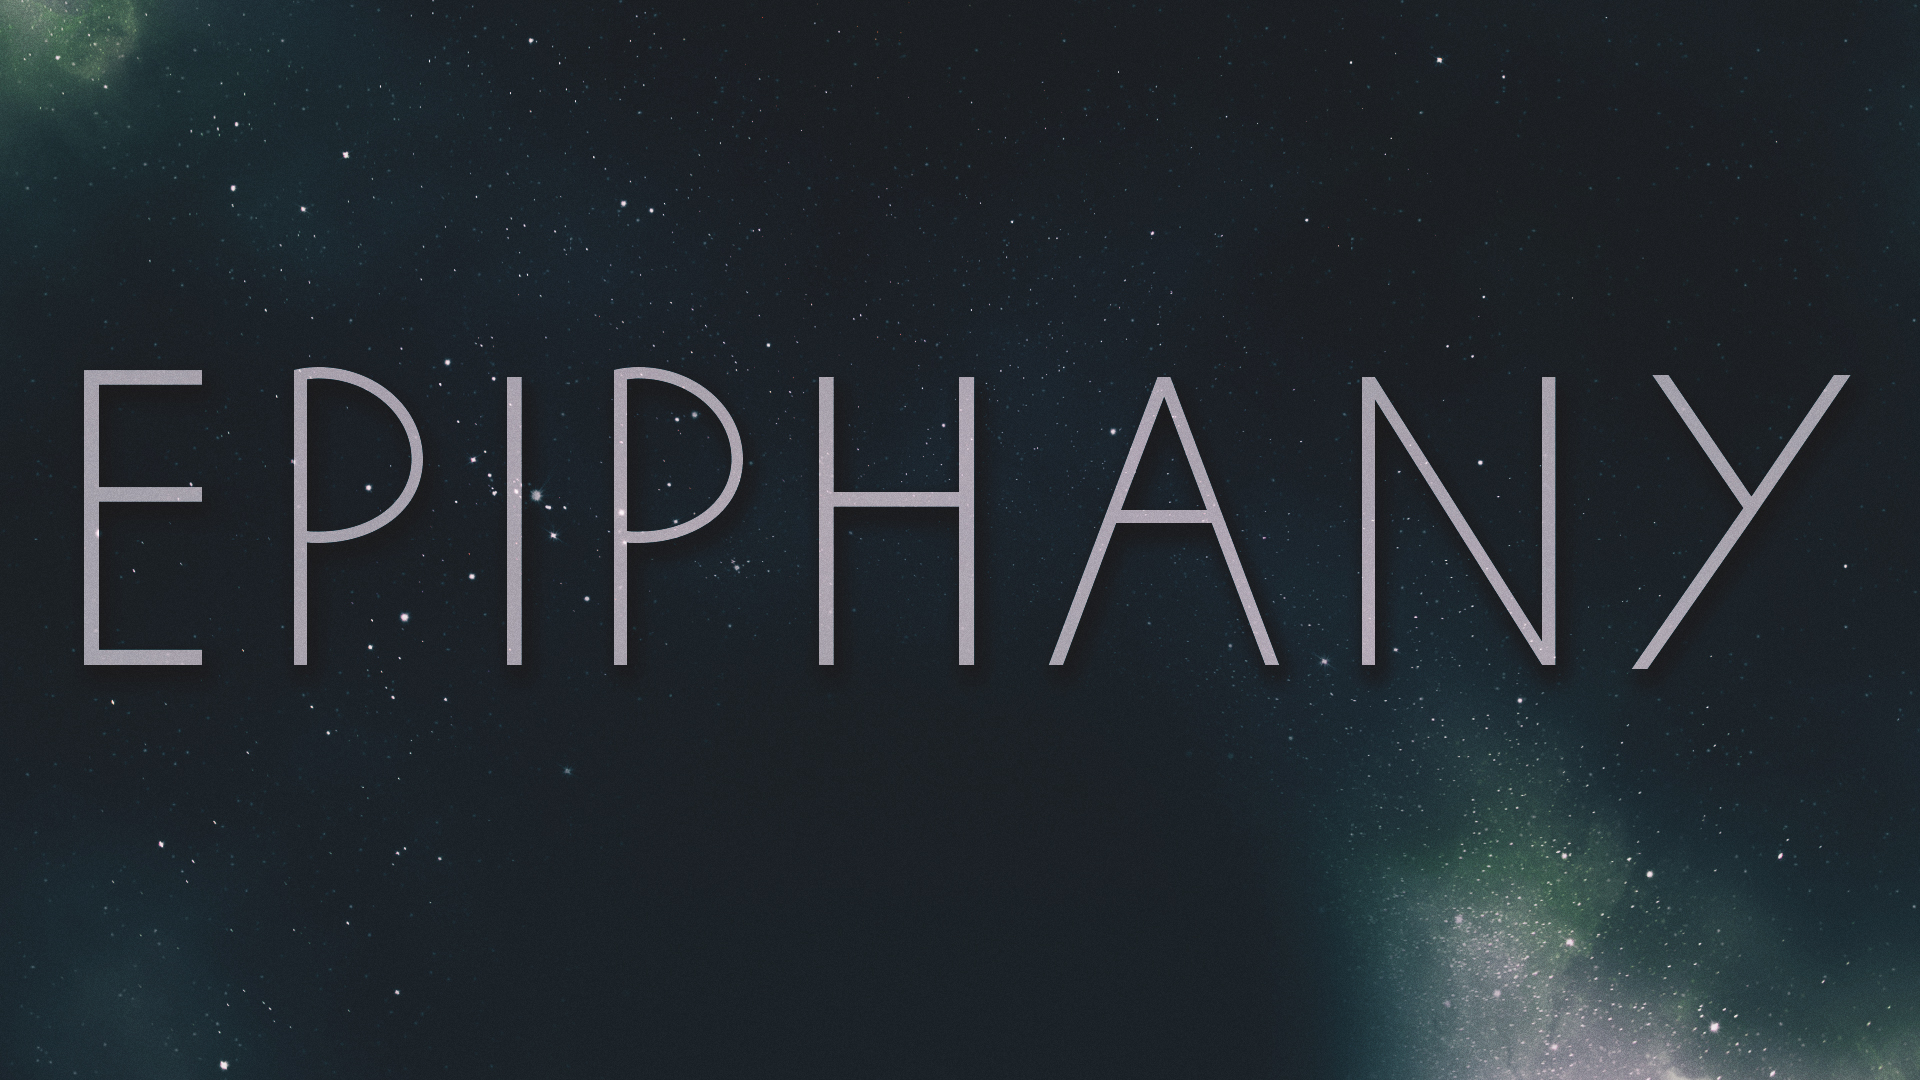 epiphany Epiphany is the sixteenth episode of the second season of angel and the thirty-eighth episode overall written by tim minear and directed by thomas j wright, it was originally broadcast on february 27, 2001 on the wb network.